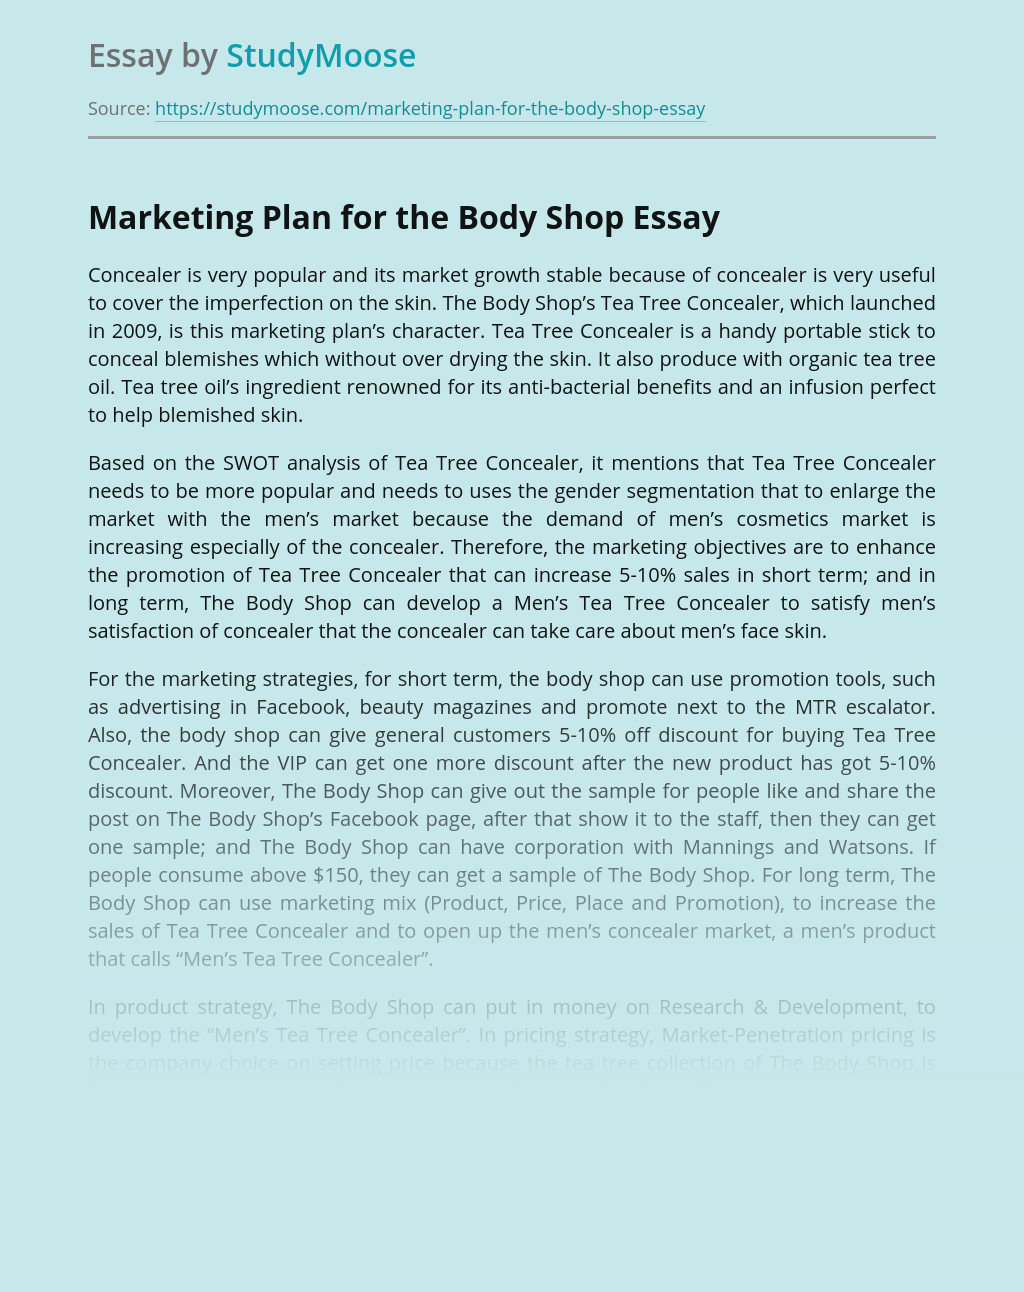 Marketing Plan for the Body Shop